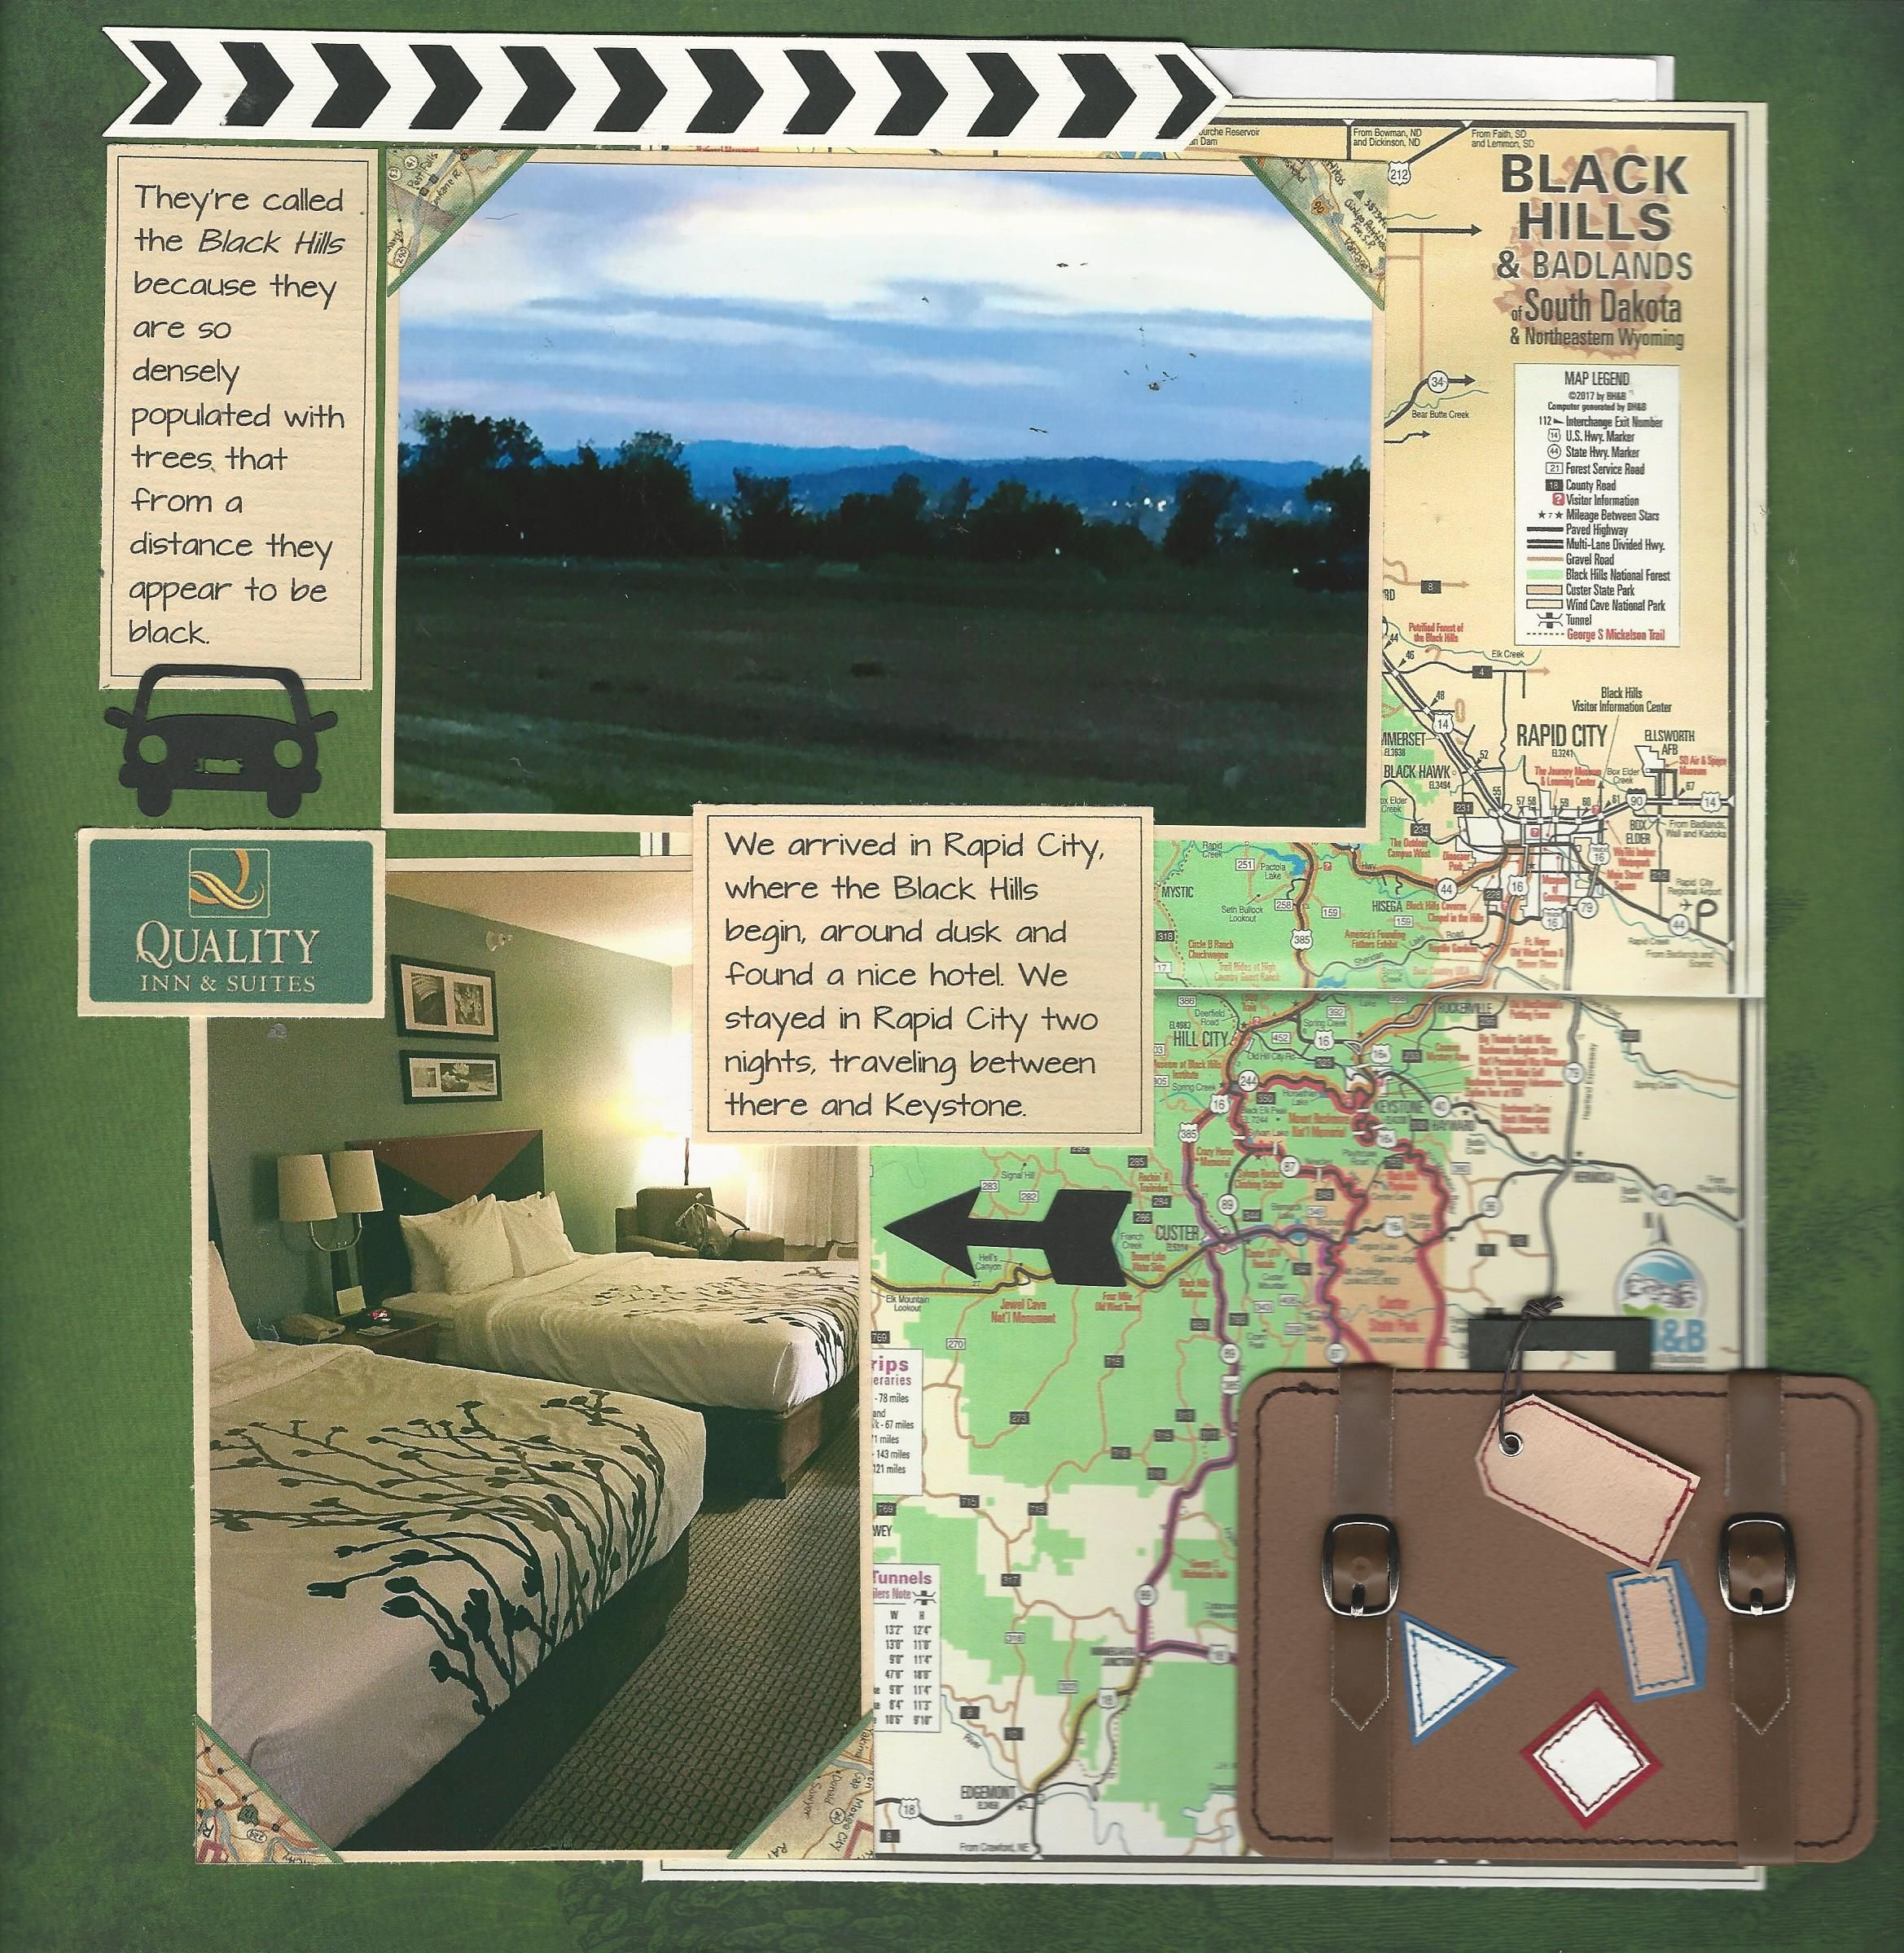 Vacation Hotel Room View Road Trip Map Scrapbook Layout